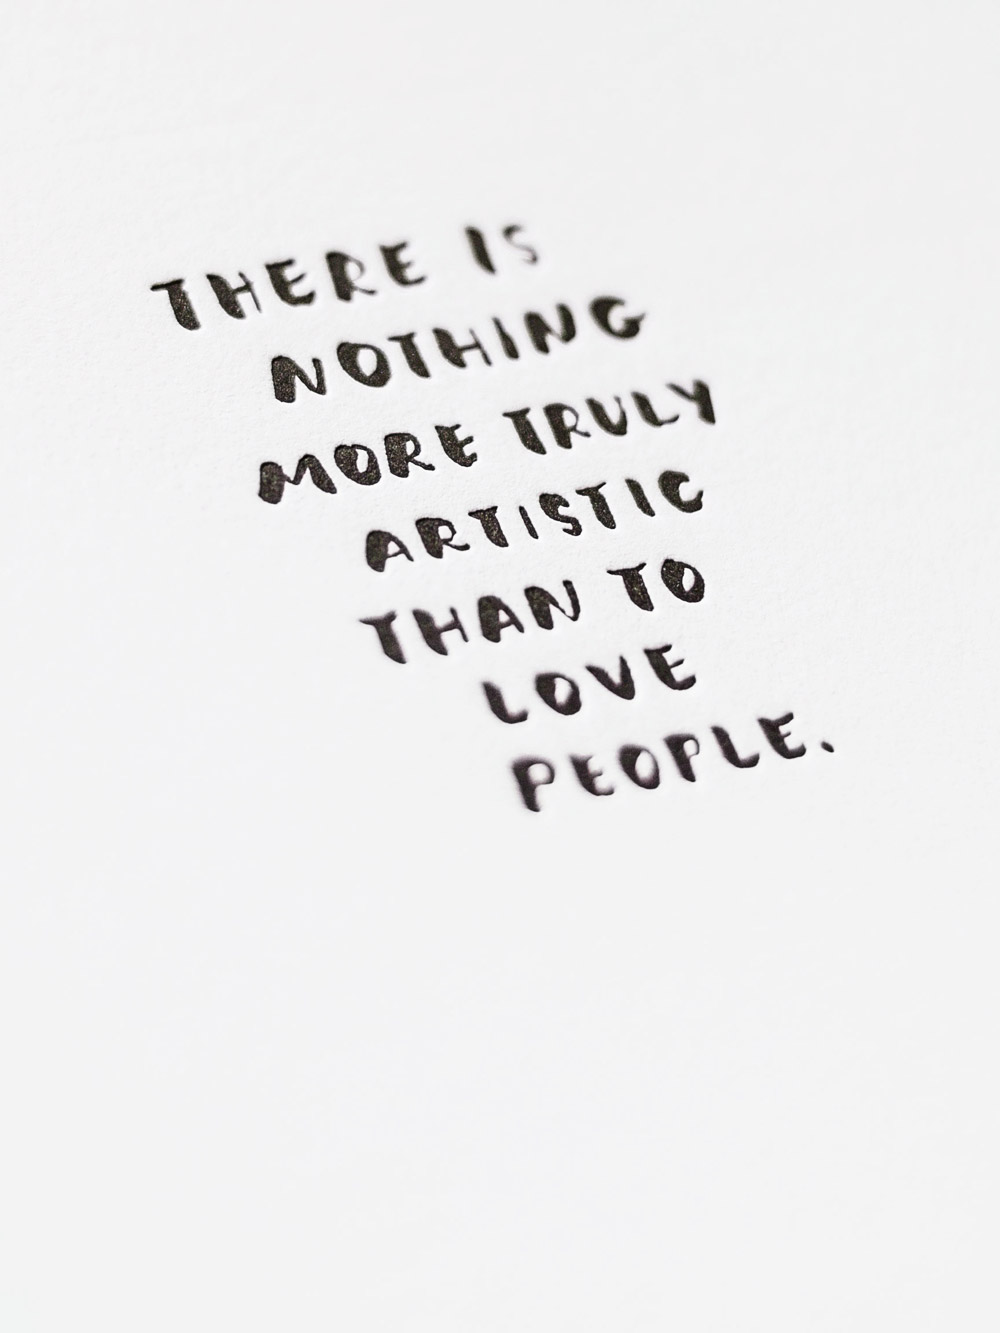 fp029-quote-there-is-nothing-more-truly-artistic-a.jpg